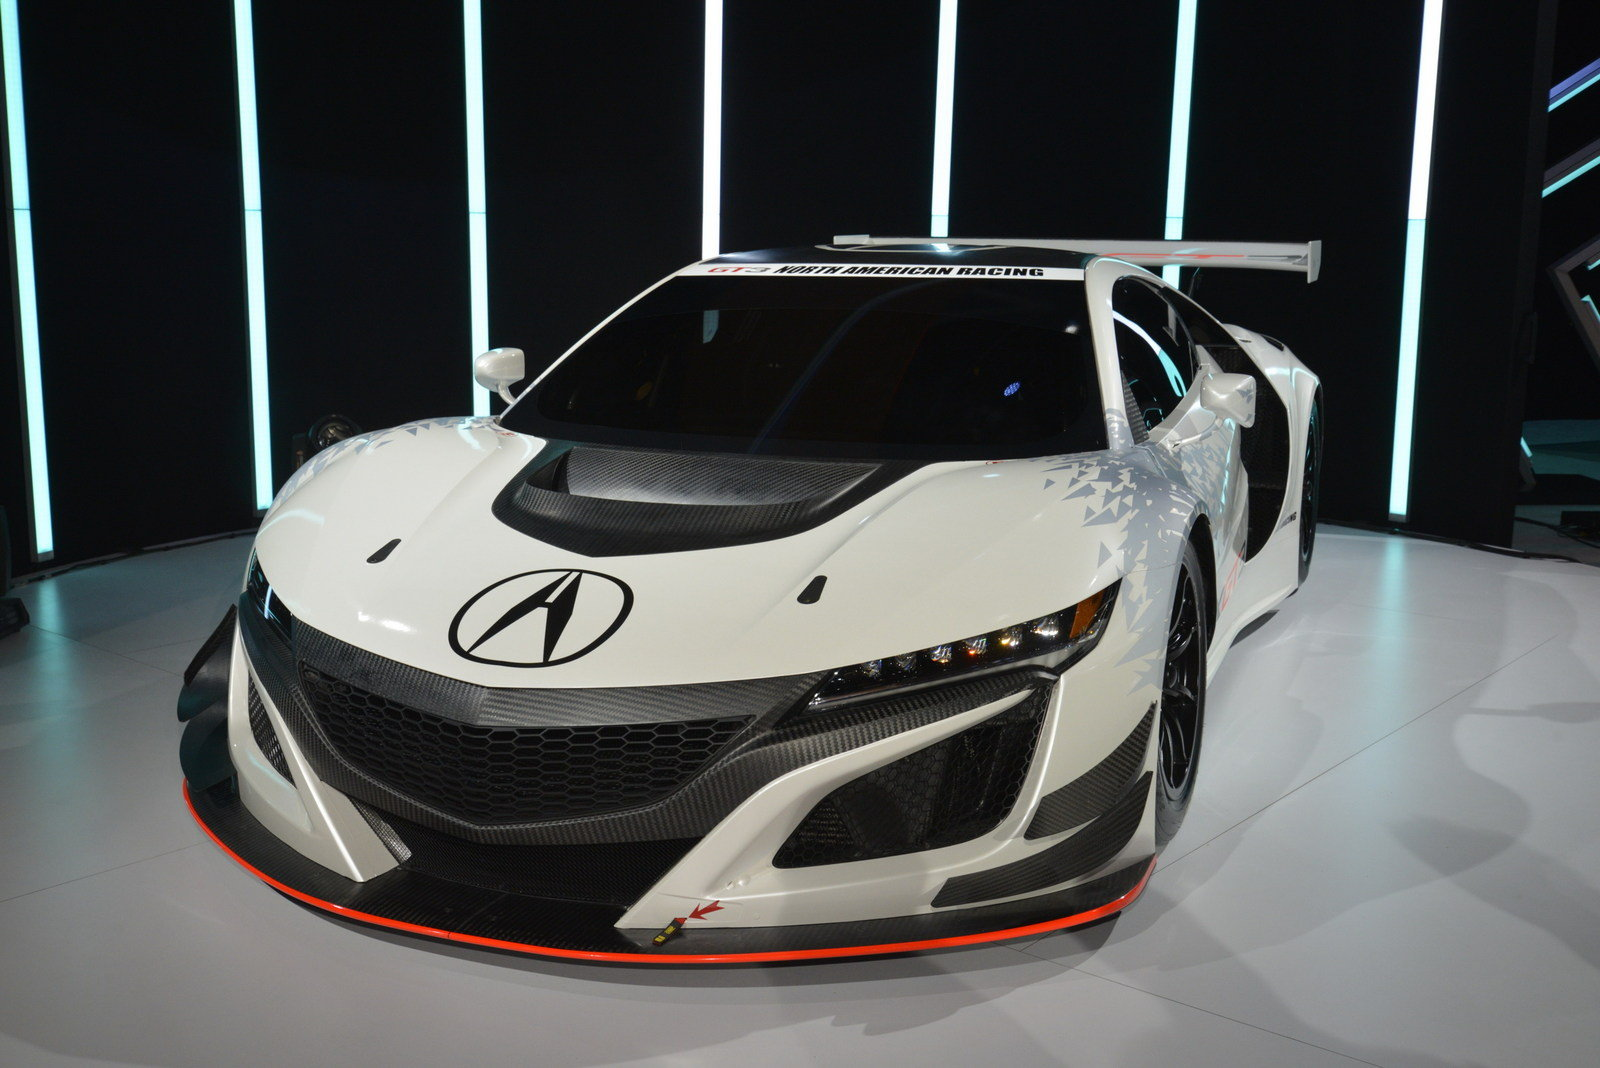 2017 acura nsx gt3 race car picture 670636 car review top speed. Black Bedroom Furniture Sets. Home Design Ideas